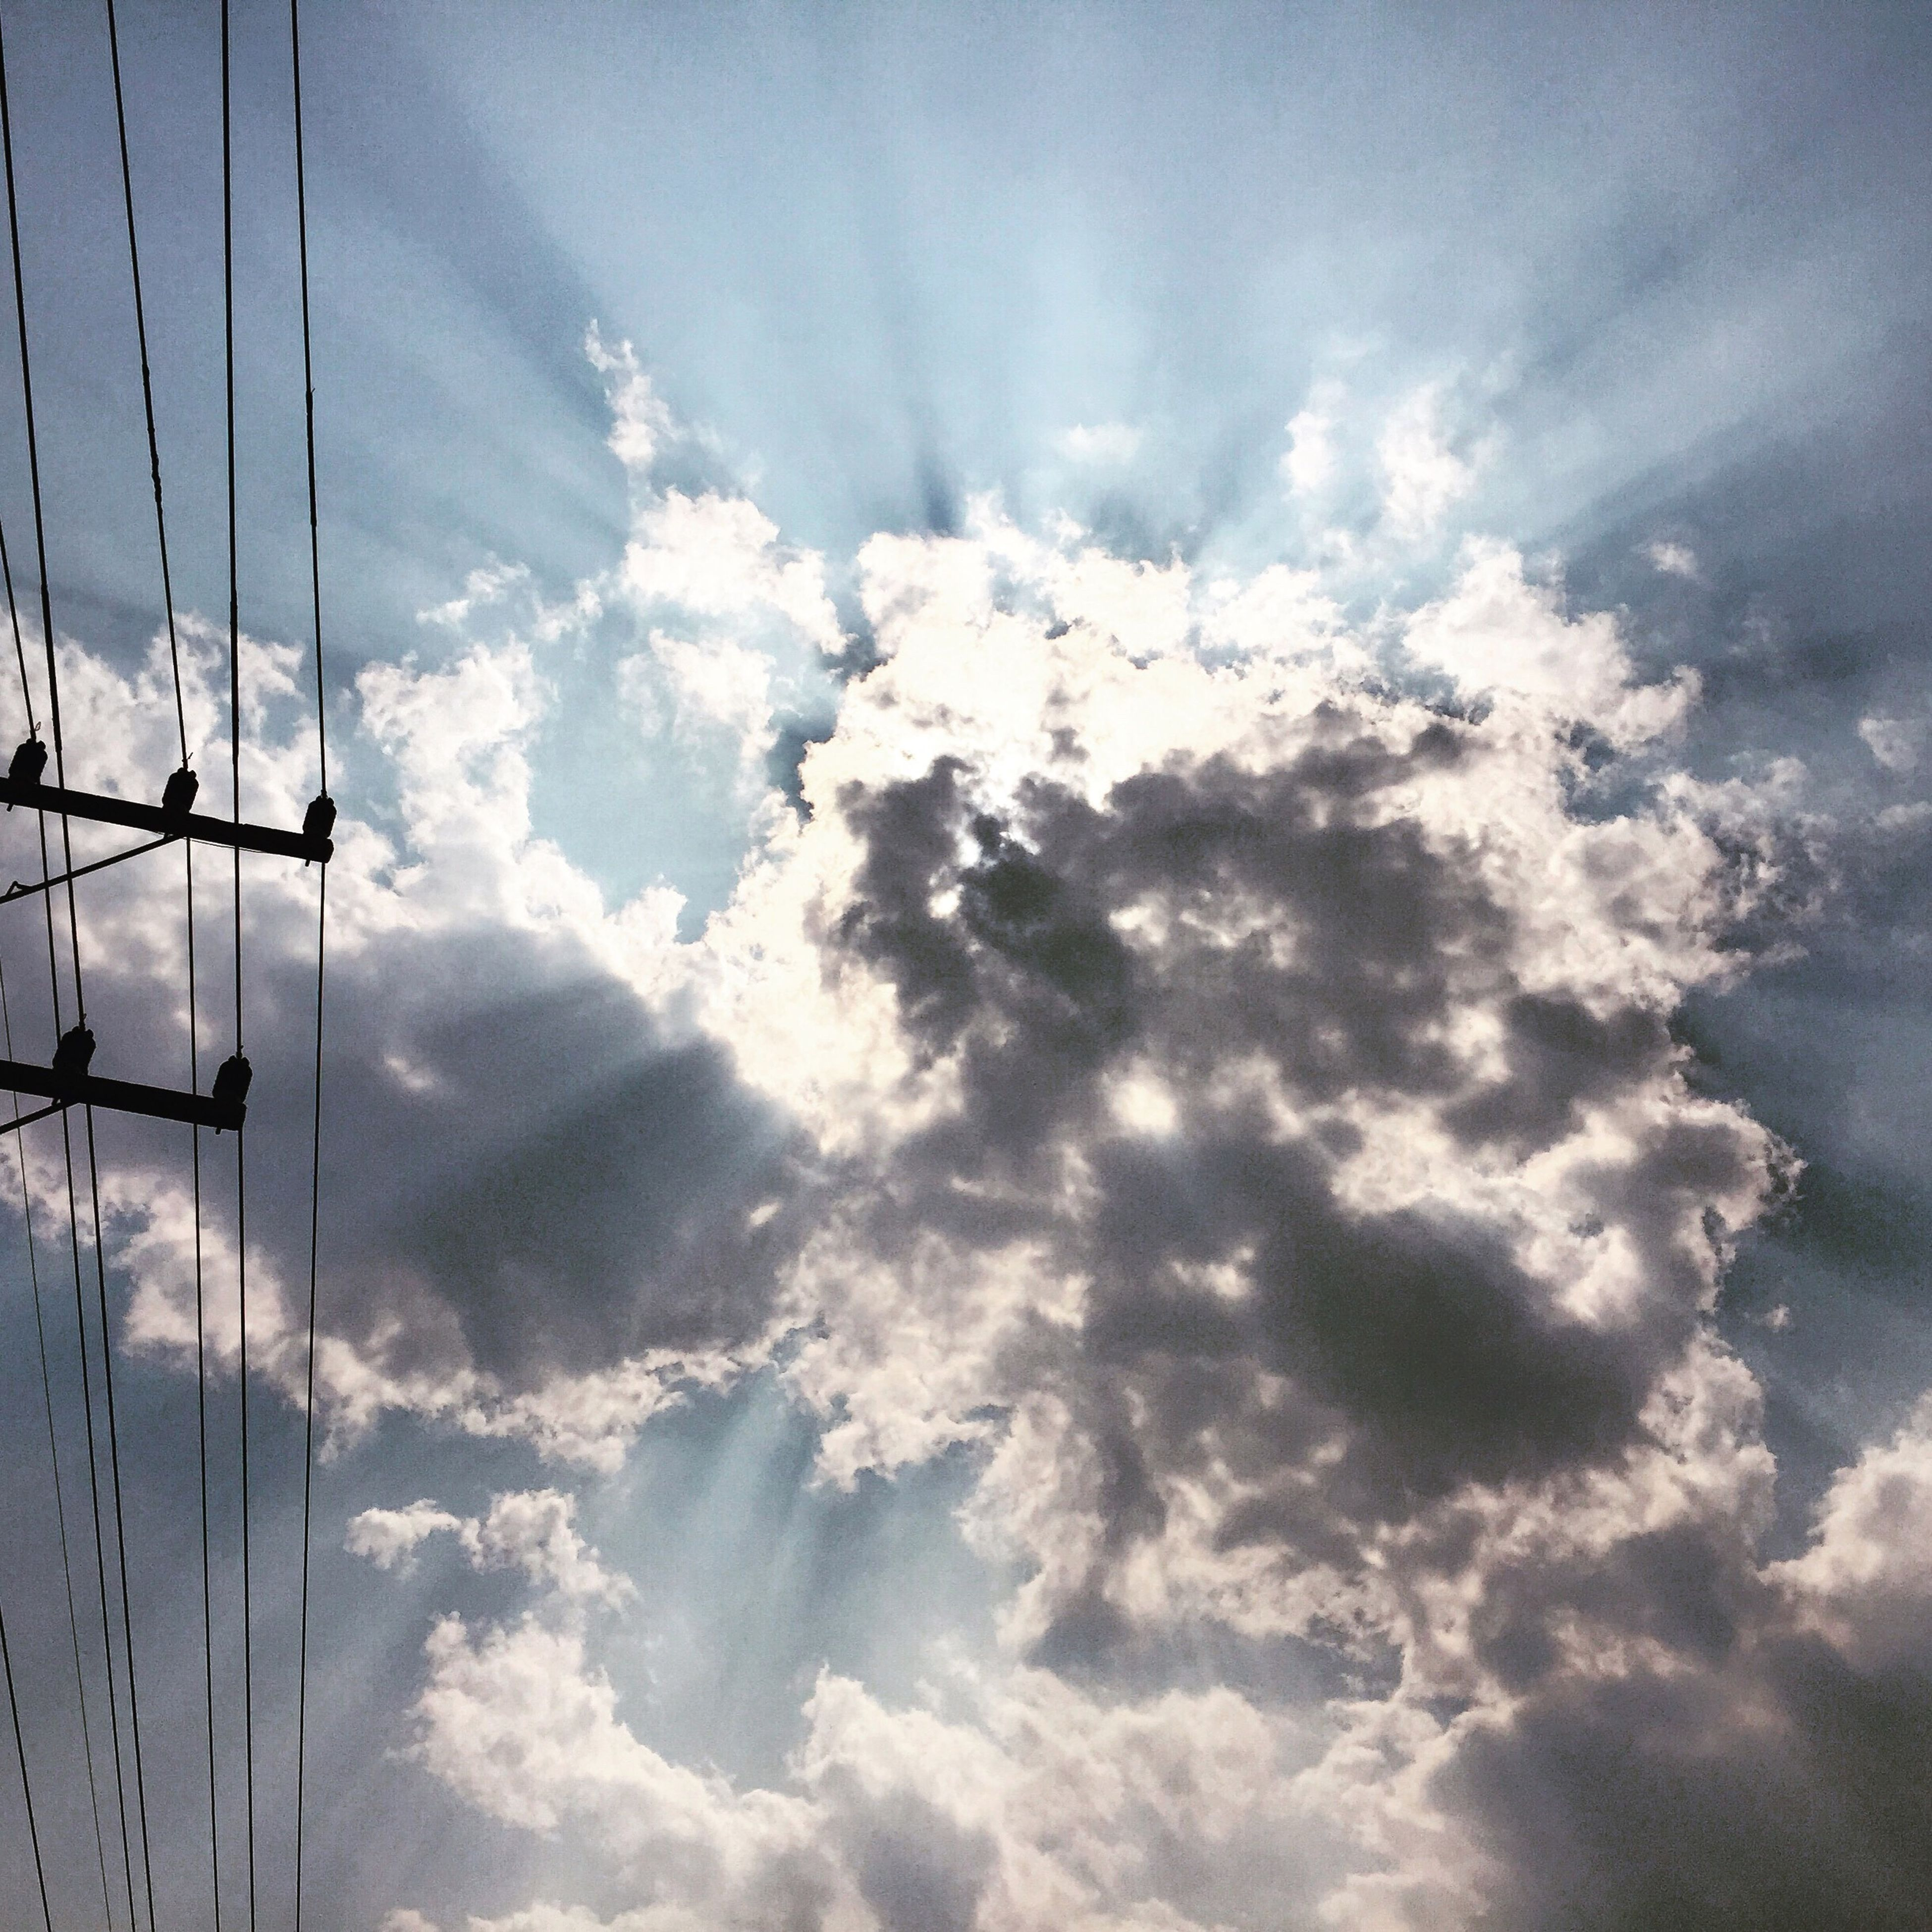 sky, cloud - sky, low angle view, cloudy, power line, electricity, electricity pylon, cloud, power supply, cable, tranquility, nature, connection, weather, beauty in nature, fuel and power generation, scenics, cloudscape, technology, tranquil scene